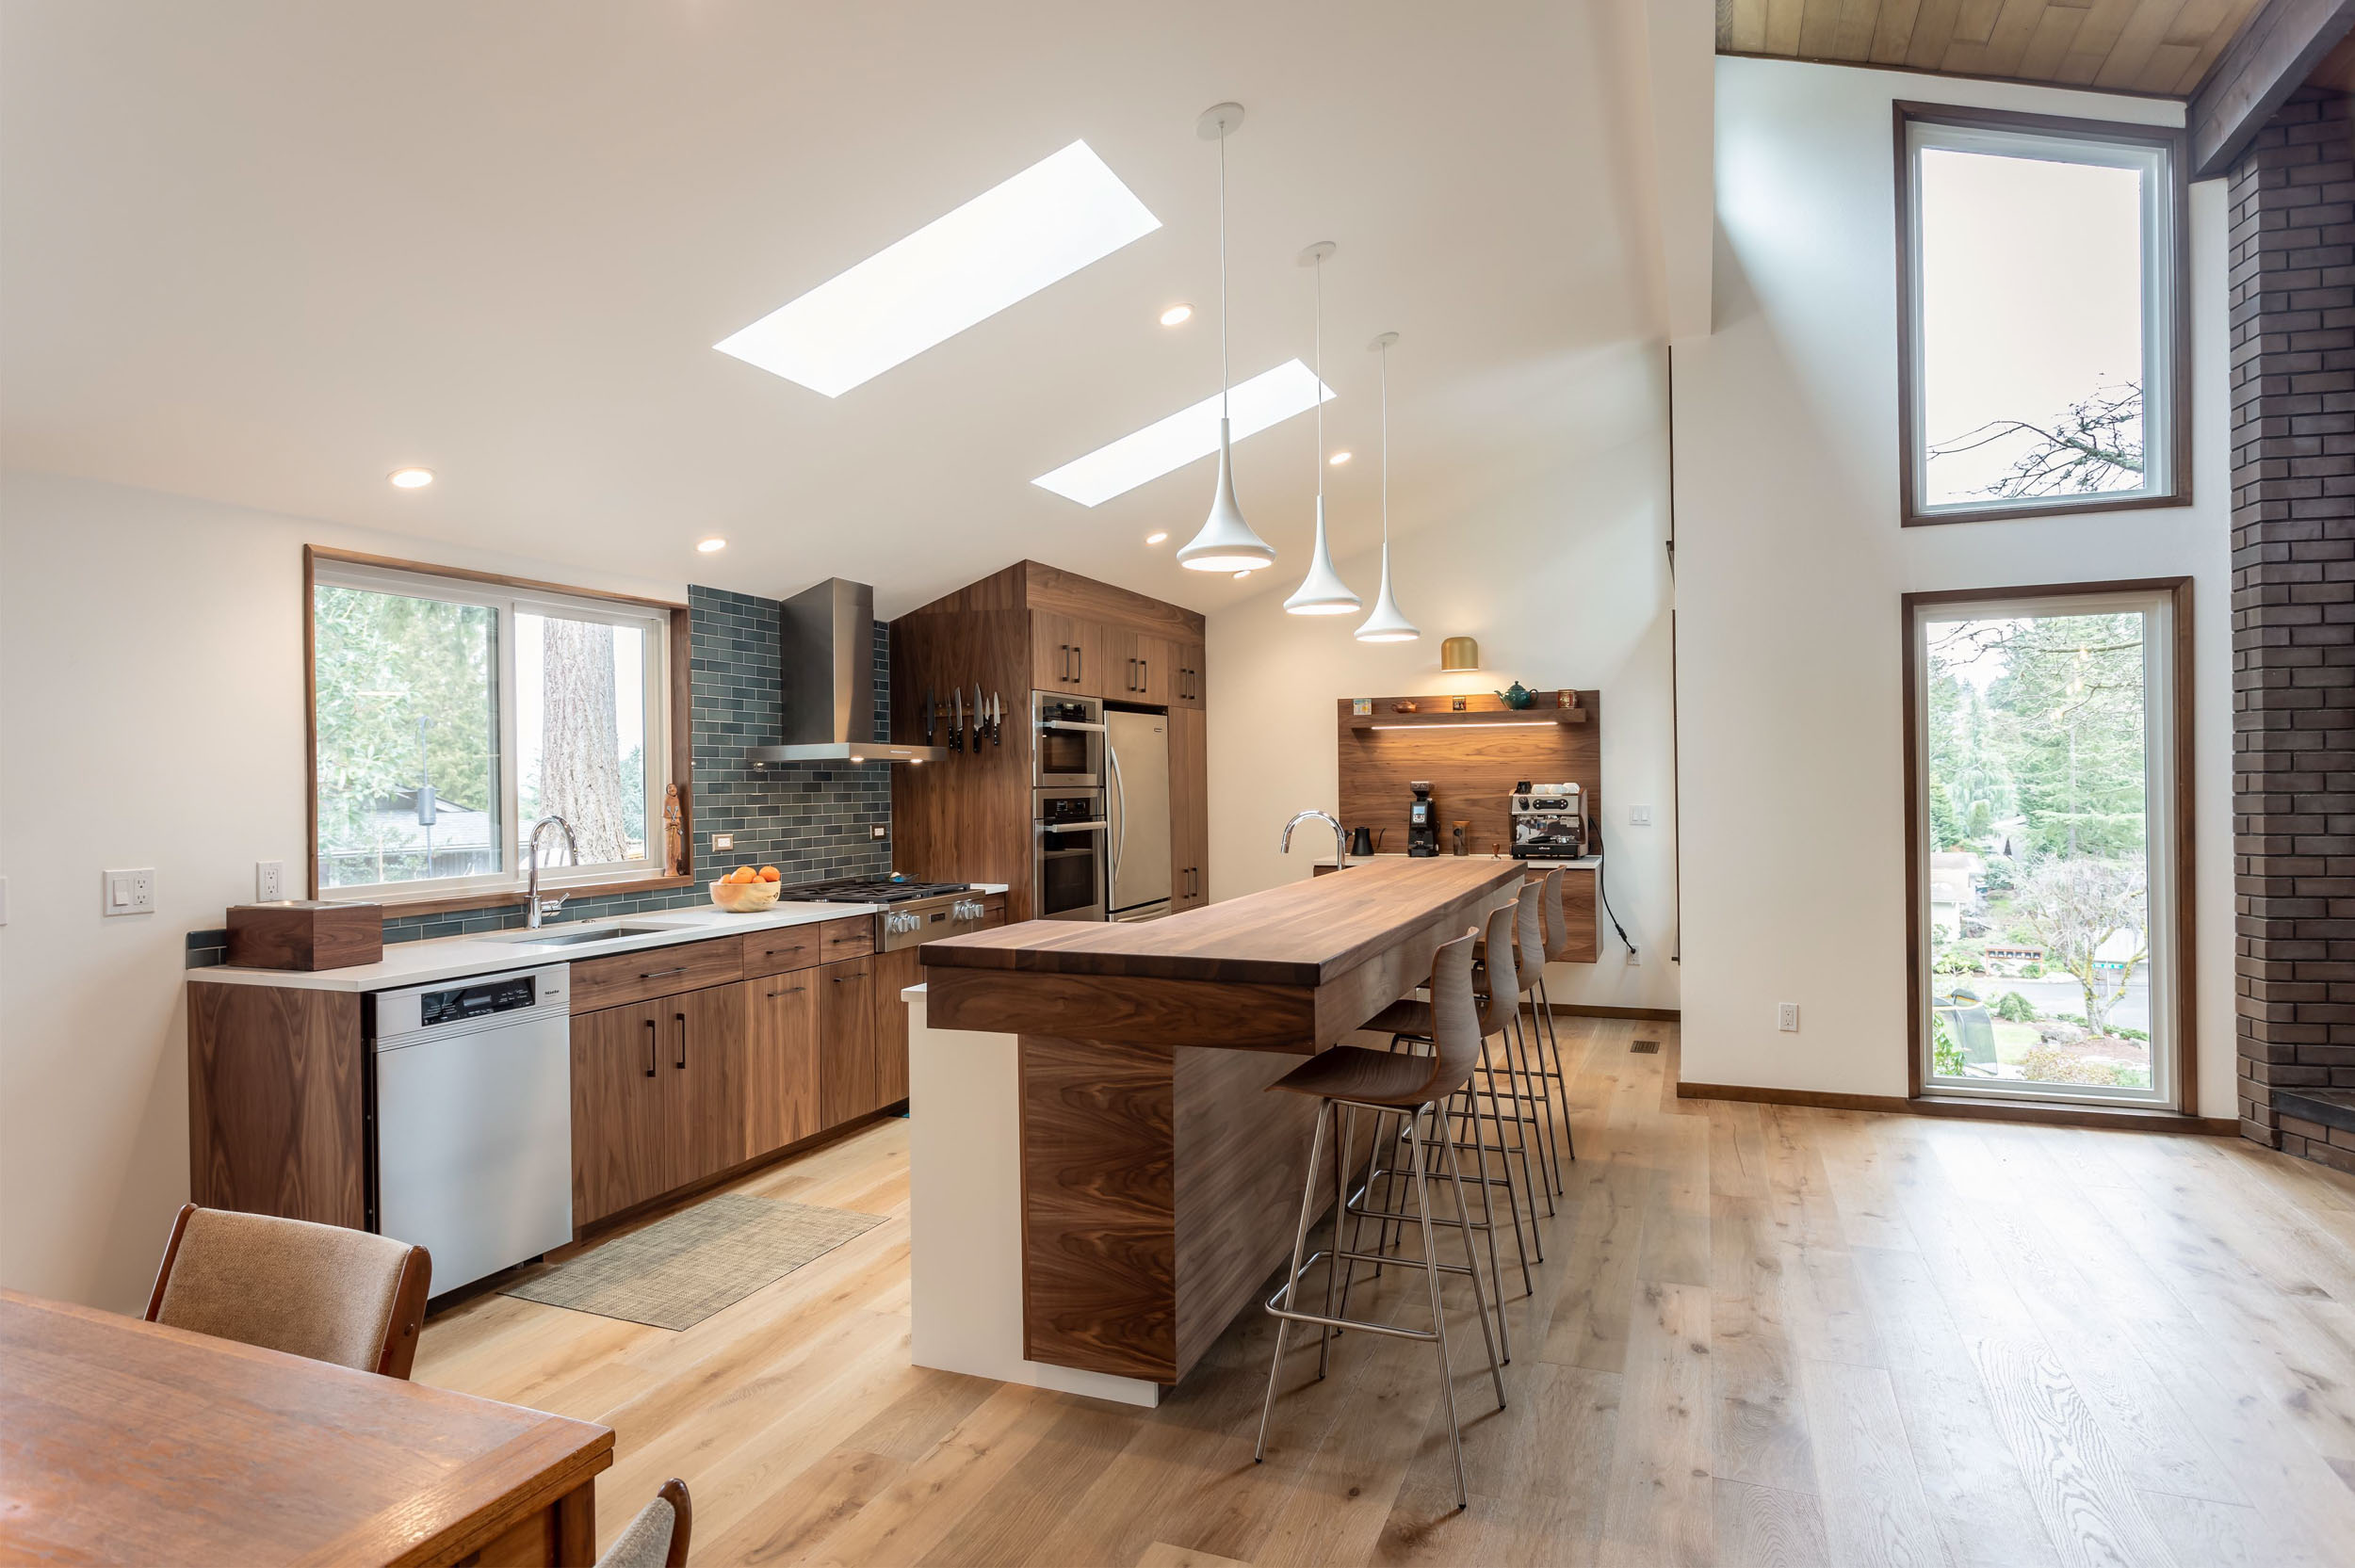 The walnut flooring, cabinet faces and Boos Block island stands out against the white countertops and walls.